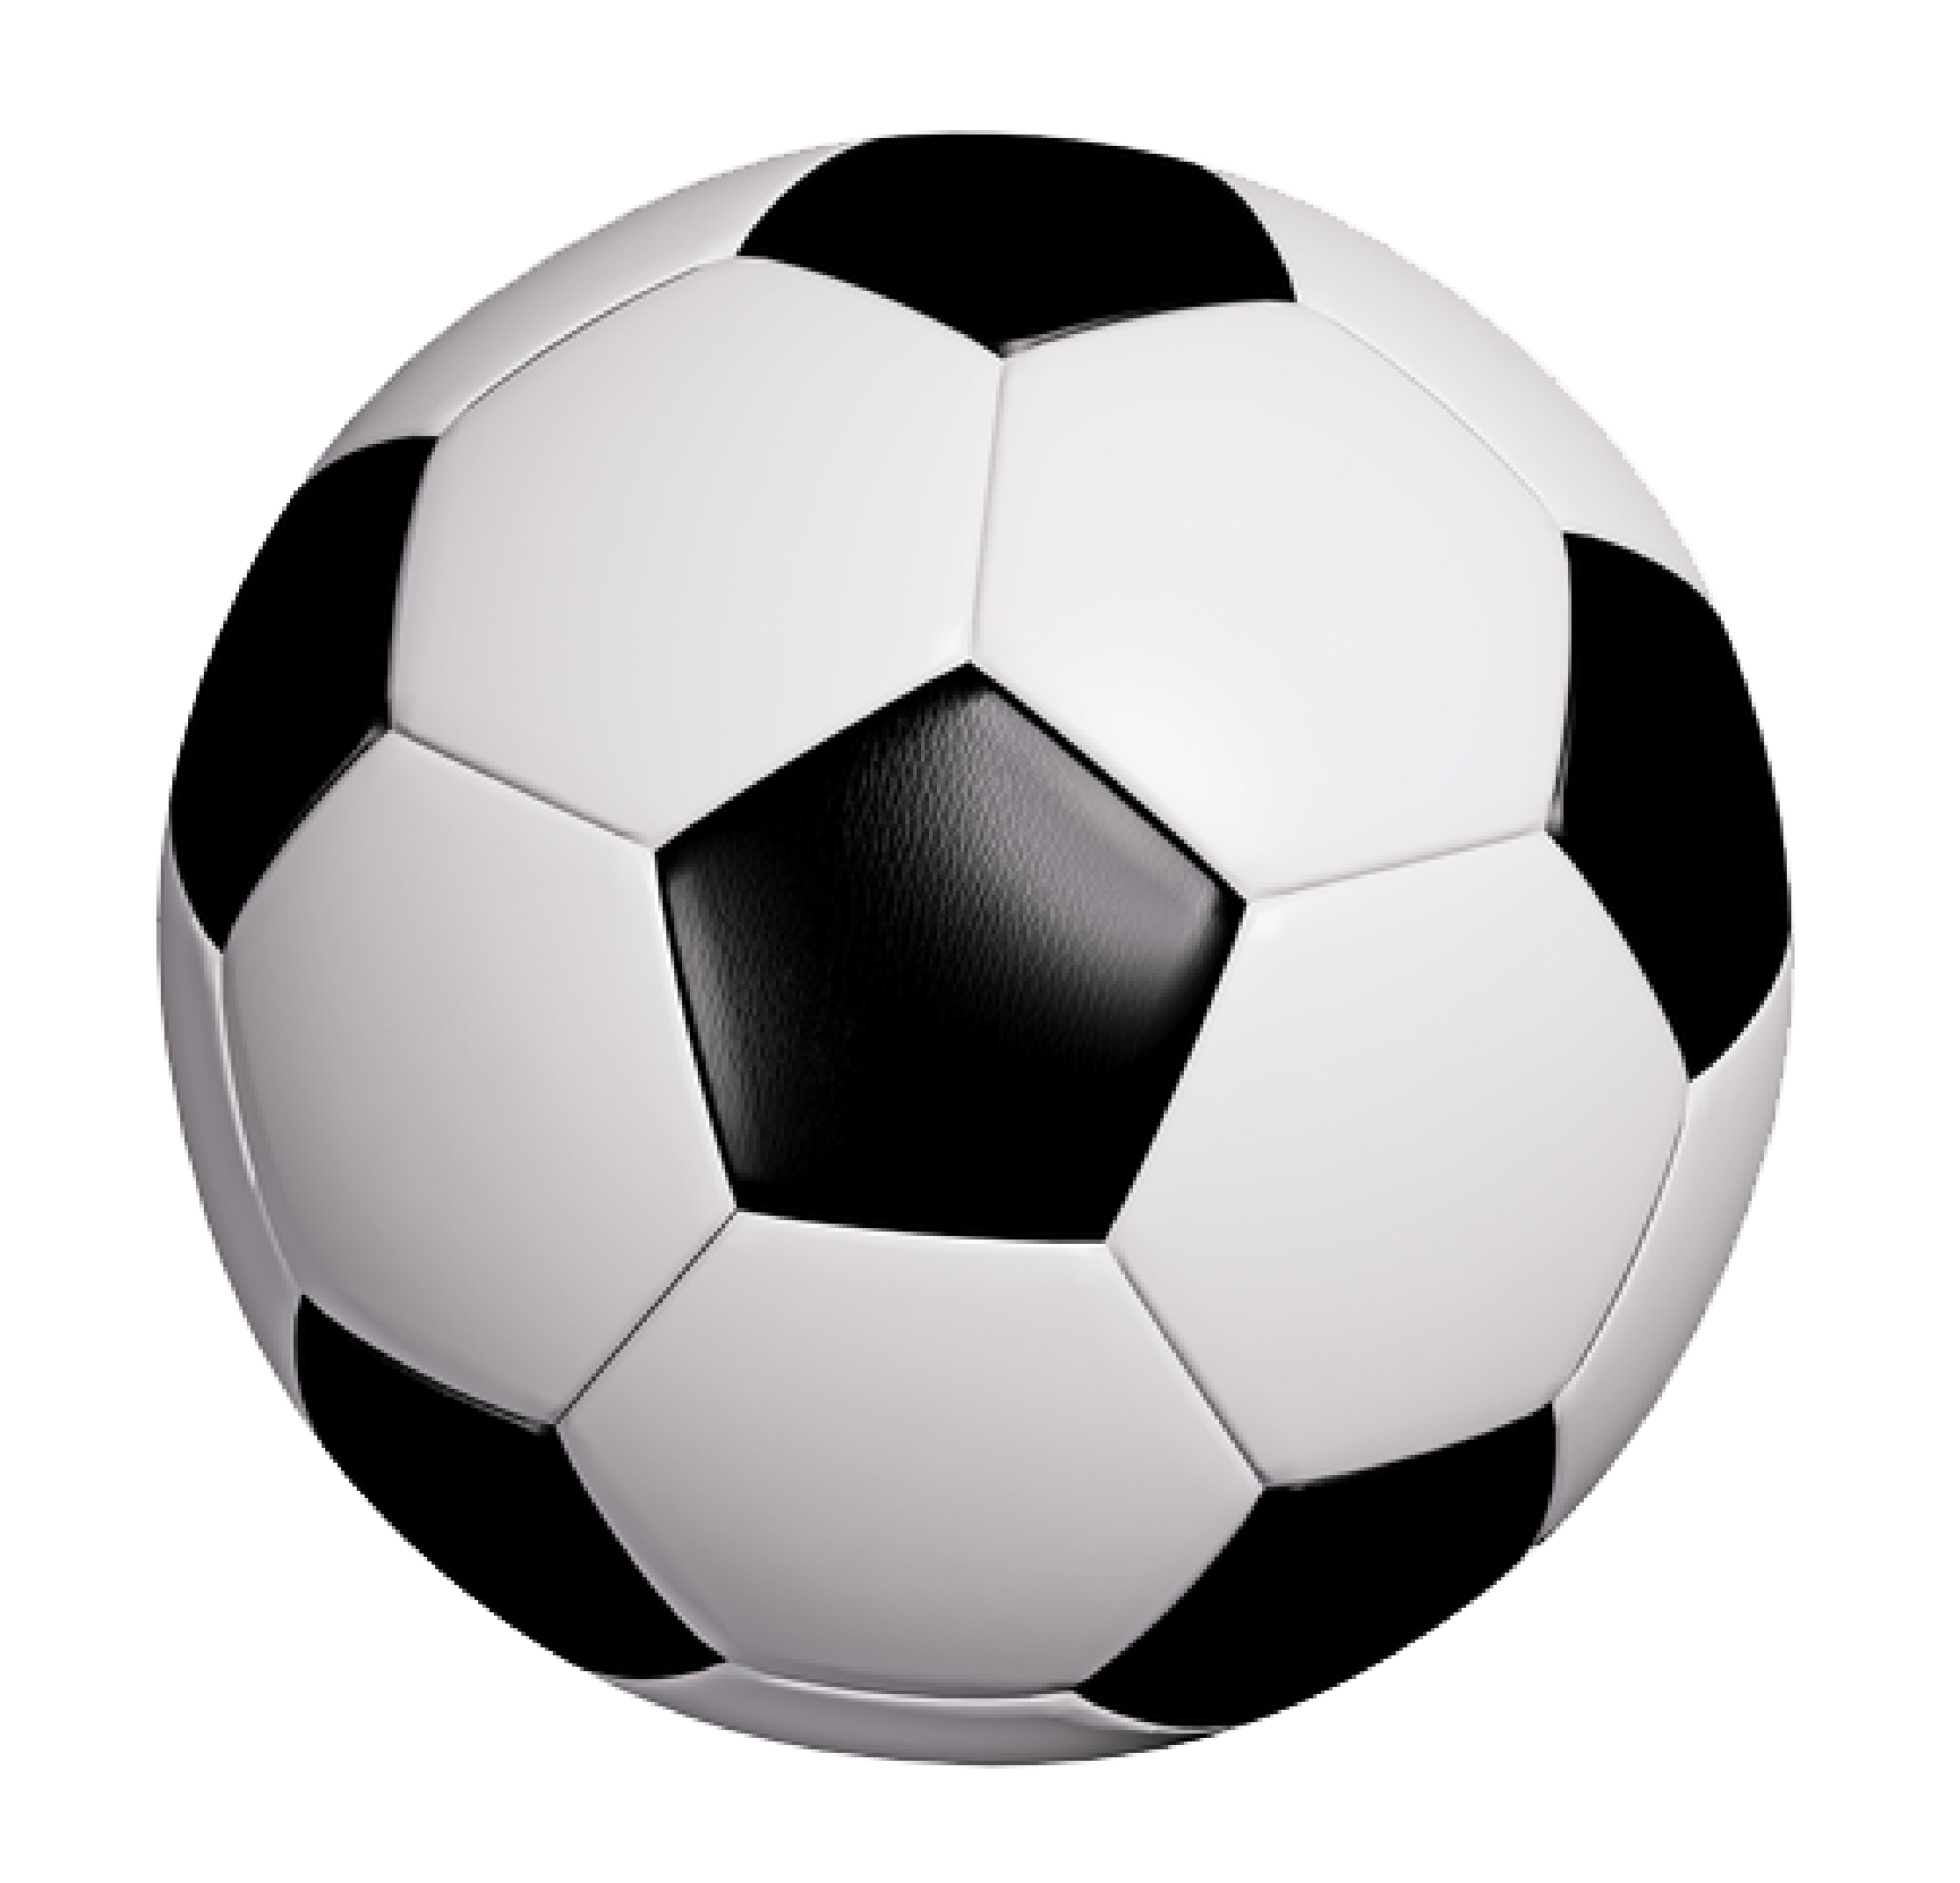 Football ball png. Images